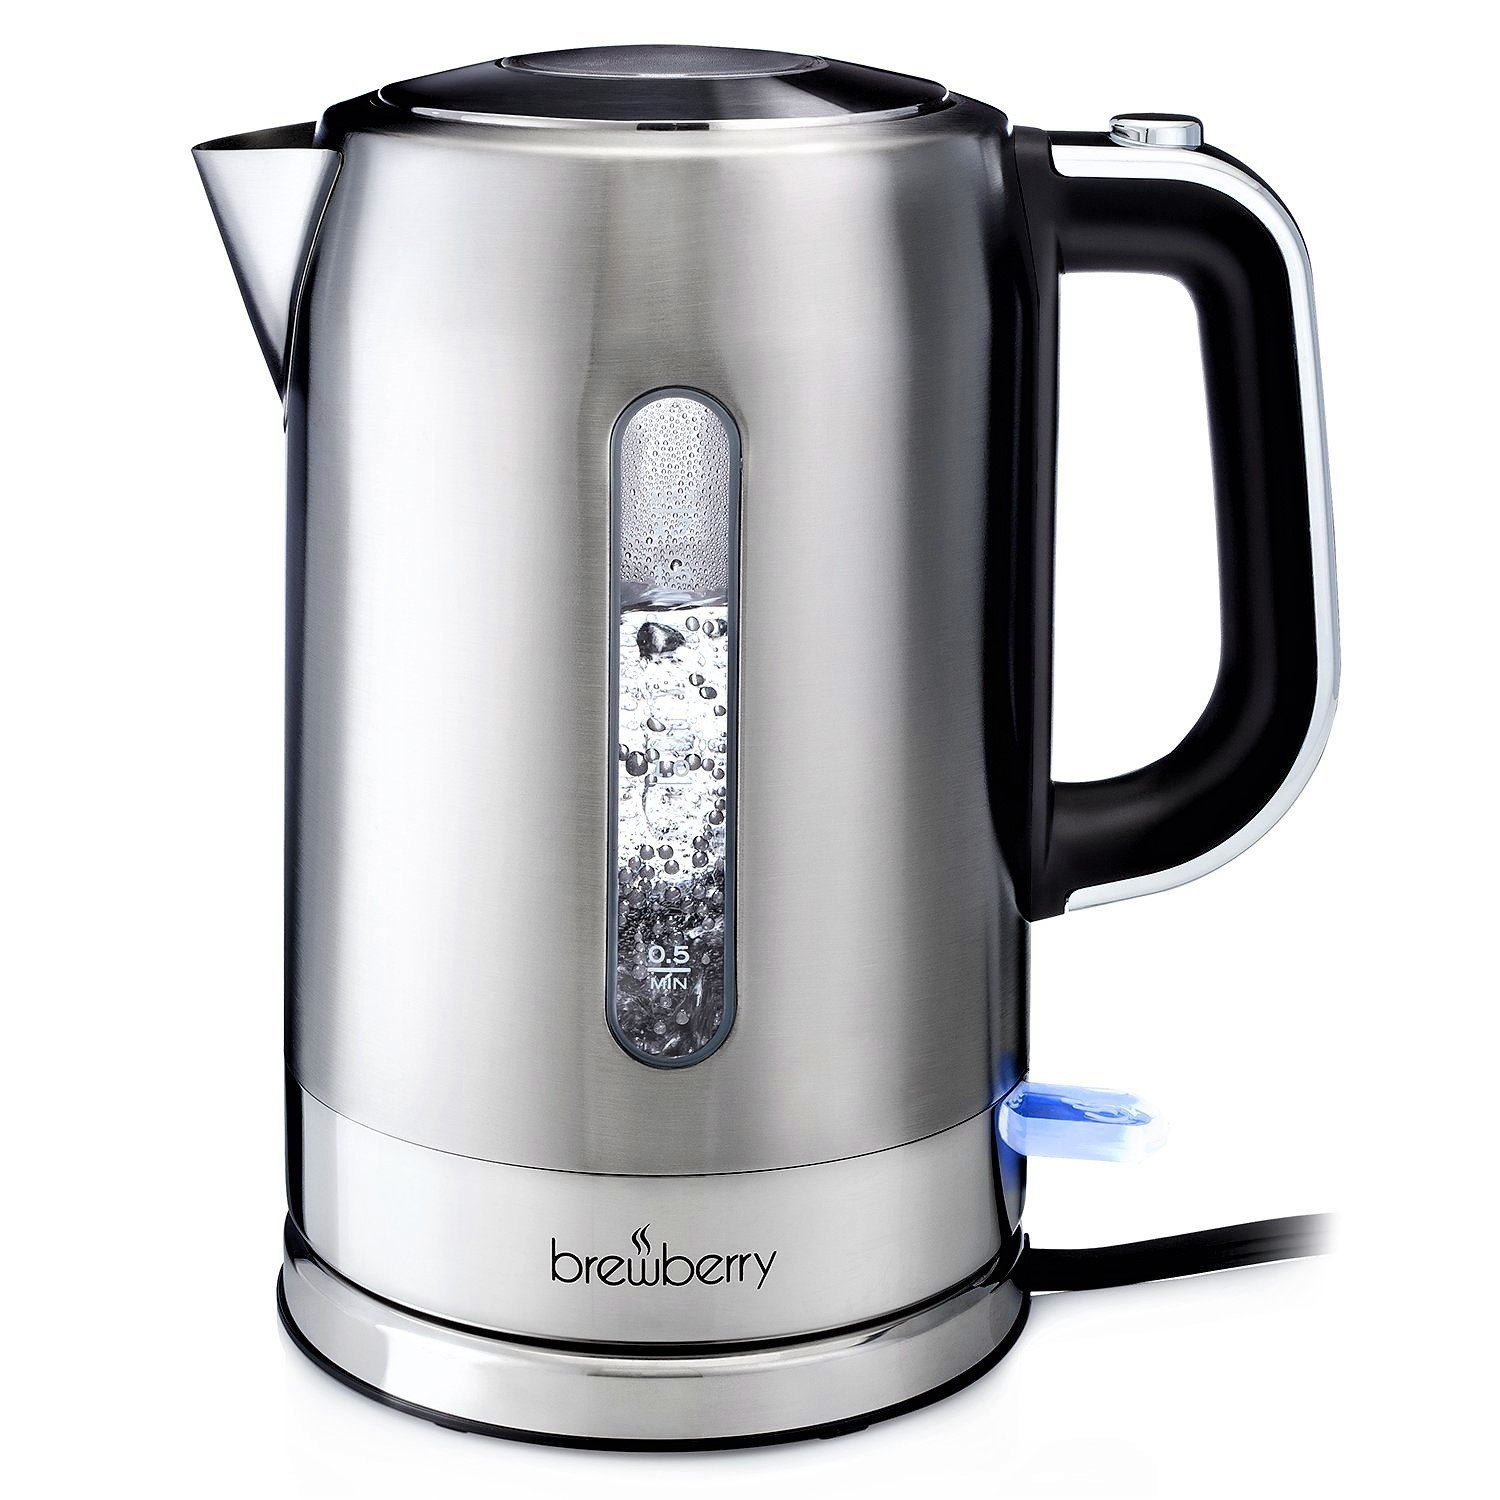 Brewberry Cordless Electric Kettle 1.7l, Stainless Steel Tea Kettle, Hot Water Pot w/ Auto Shut-Off Function and Boil-Dry Protection, For Office and Home Use, 1.7 Liter BR-KG5-US